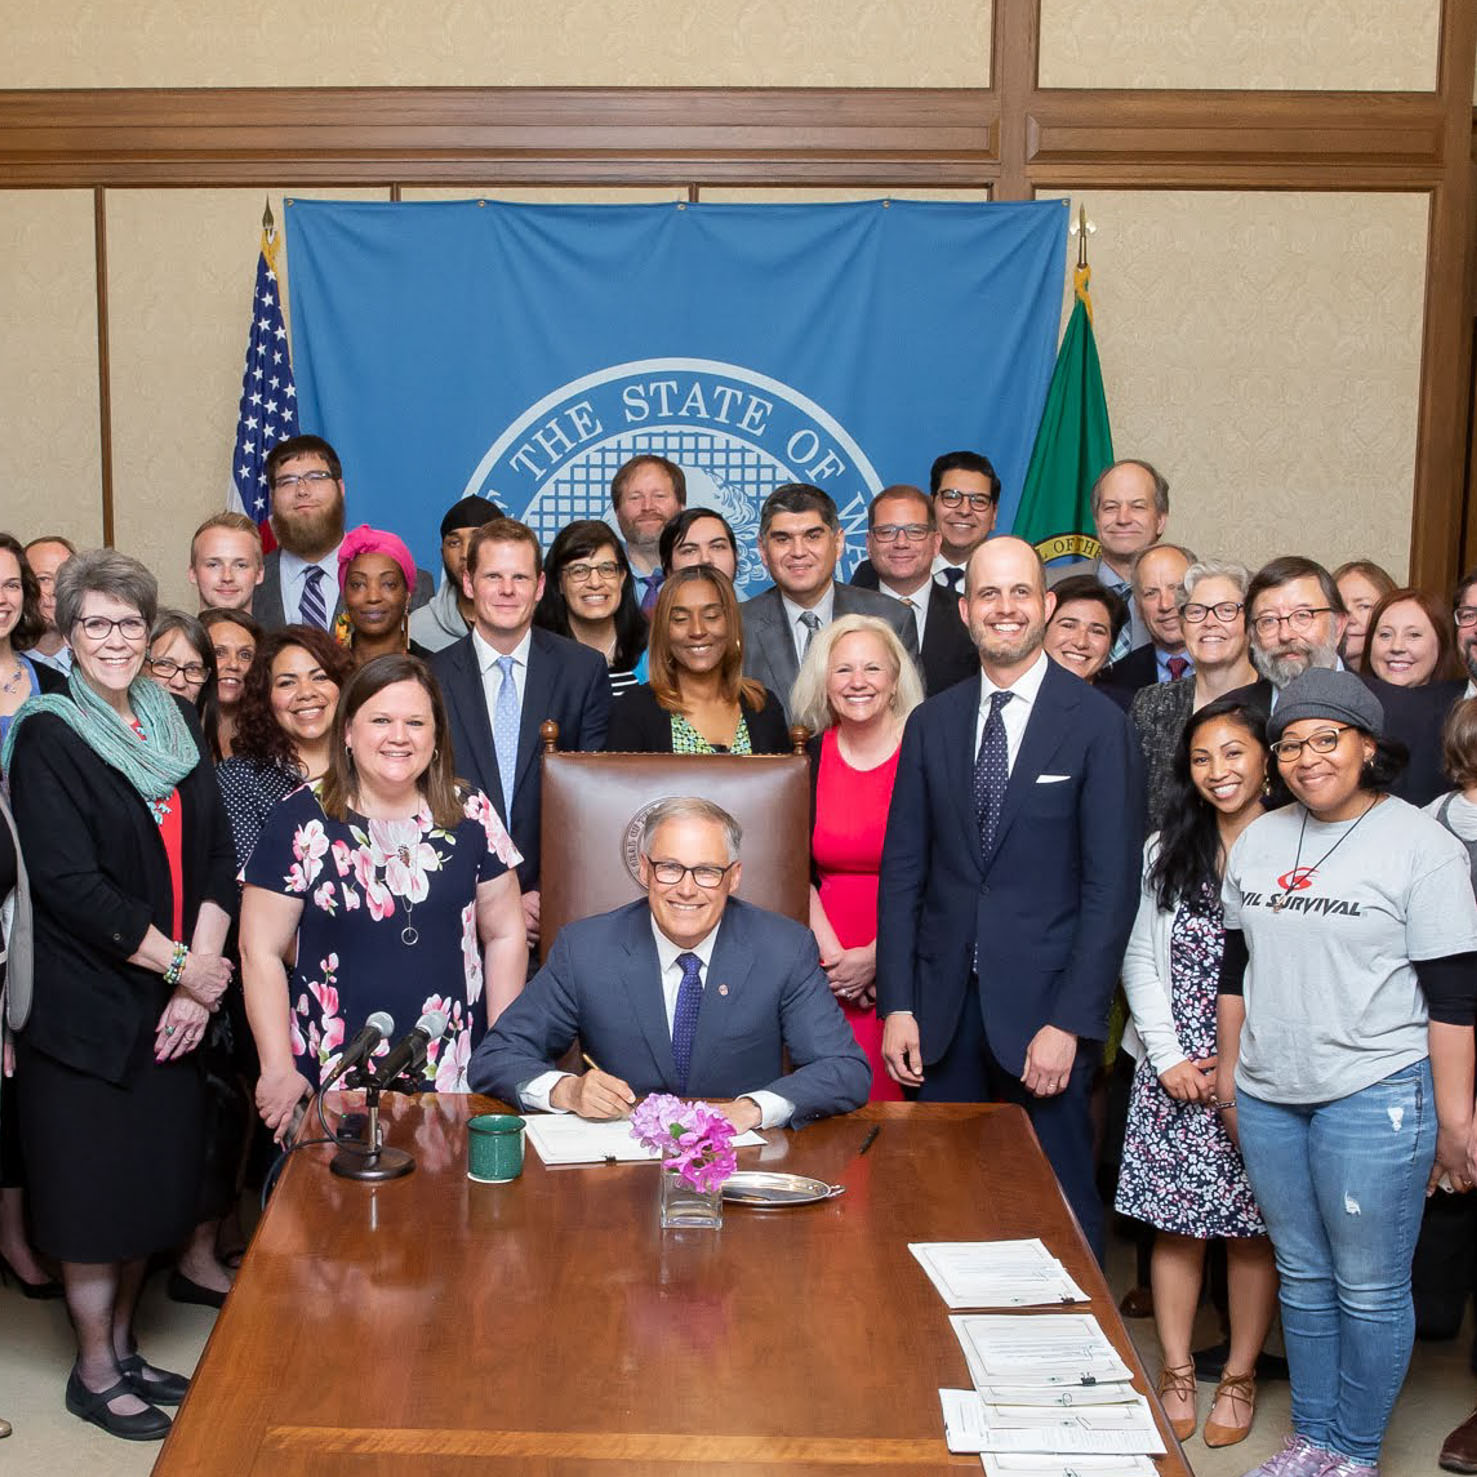 Tarra Simmons stands beside Washington Governor Jay Inslee, who is signing the New Hope Act bill